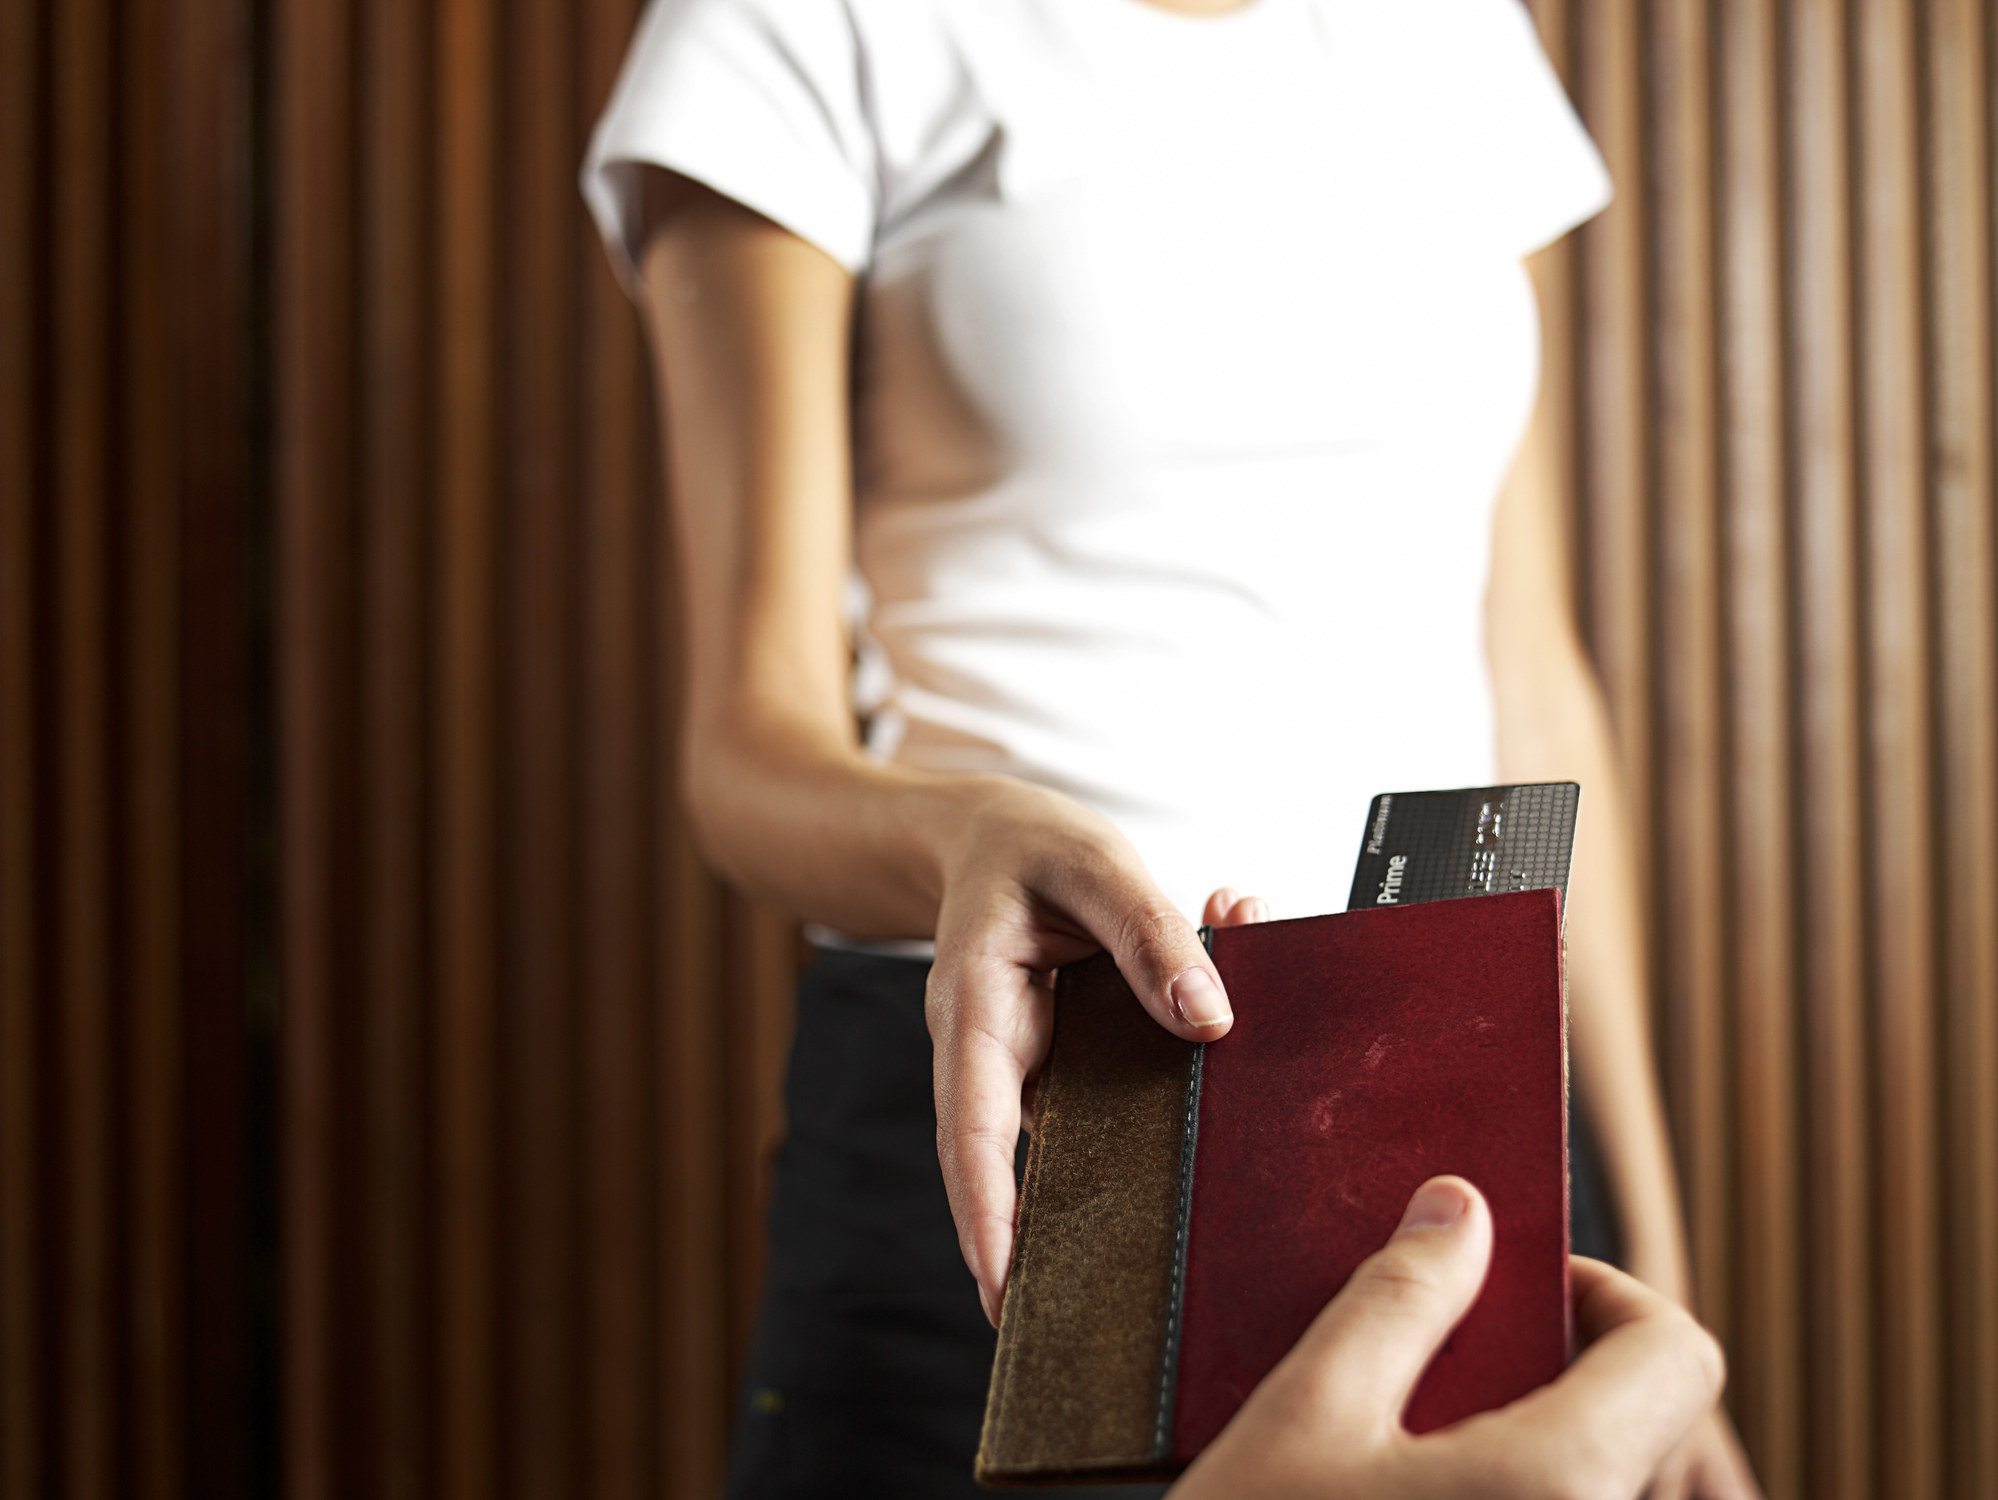 A waiter taking a check with a credit card.